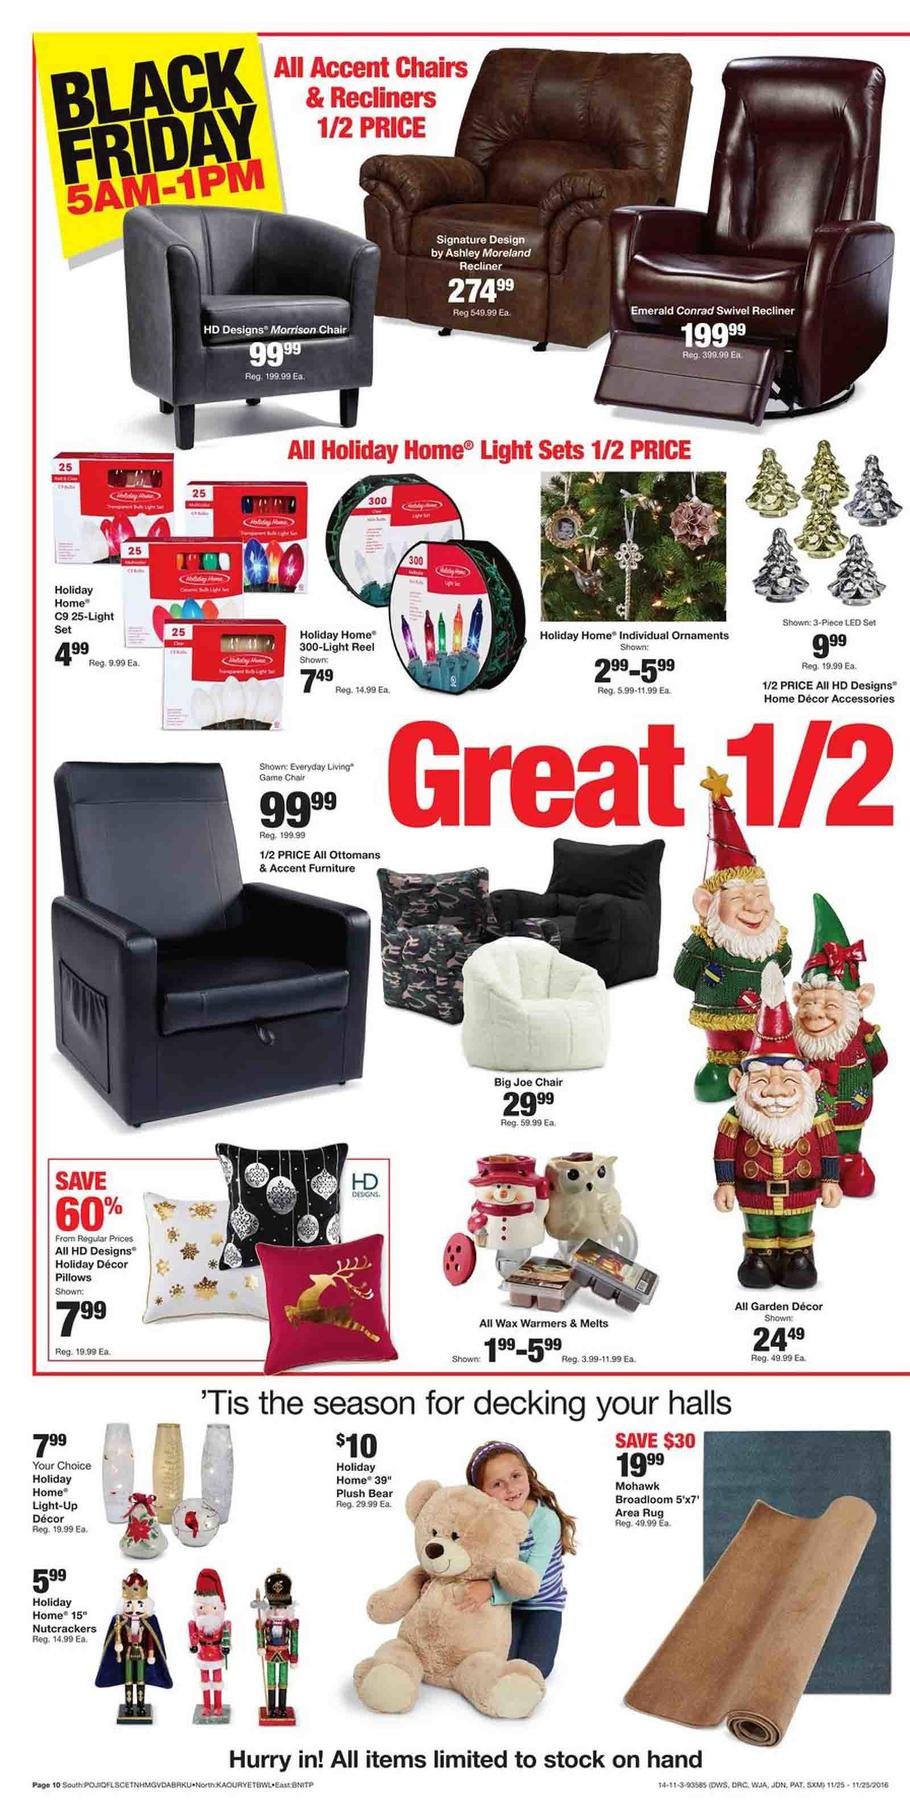 Swell Fred Meyer Black Friday Ad 2016 Inzonedesignstudio Interior Chair Design Inzonedesignstudiocom